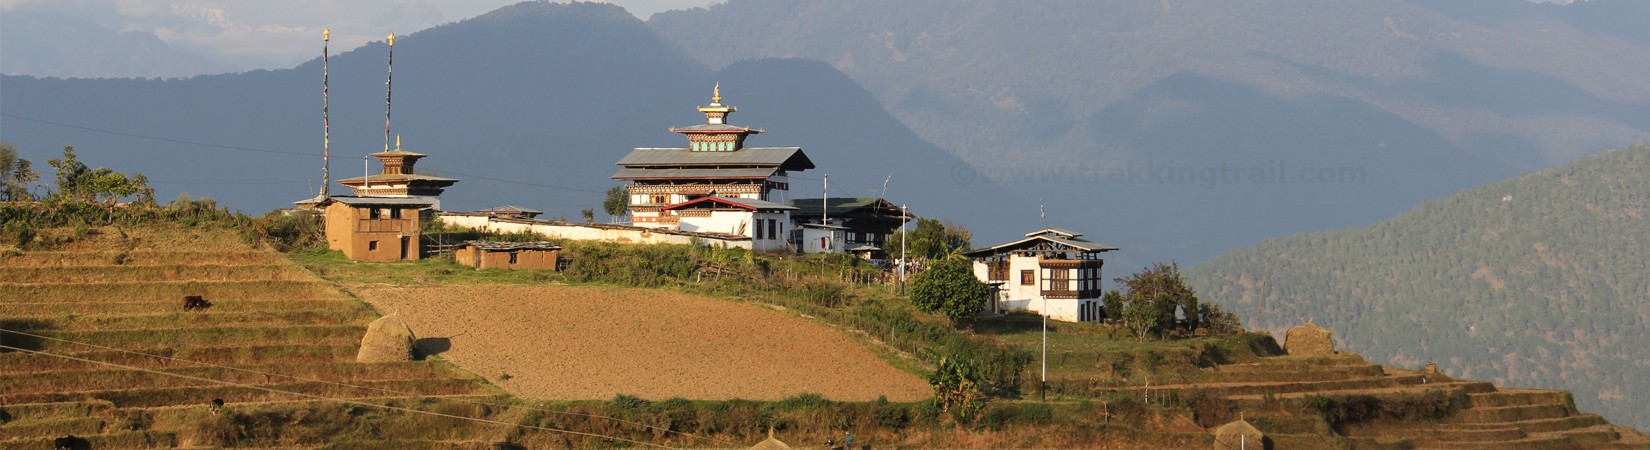 Buddhist Monastery, Terreced Field and Traditional Home in The Hiking Village of Punakha, Bhutan